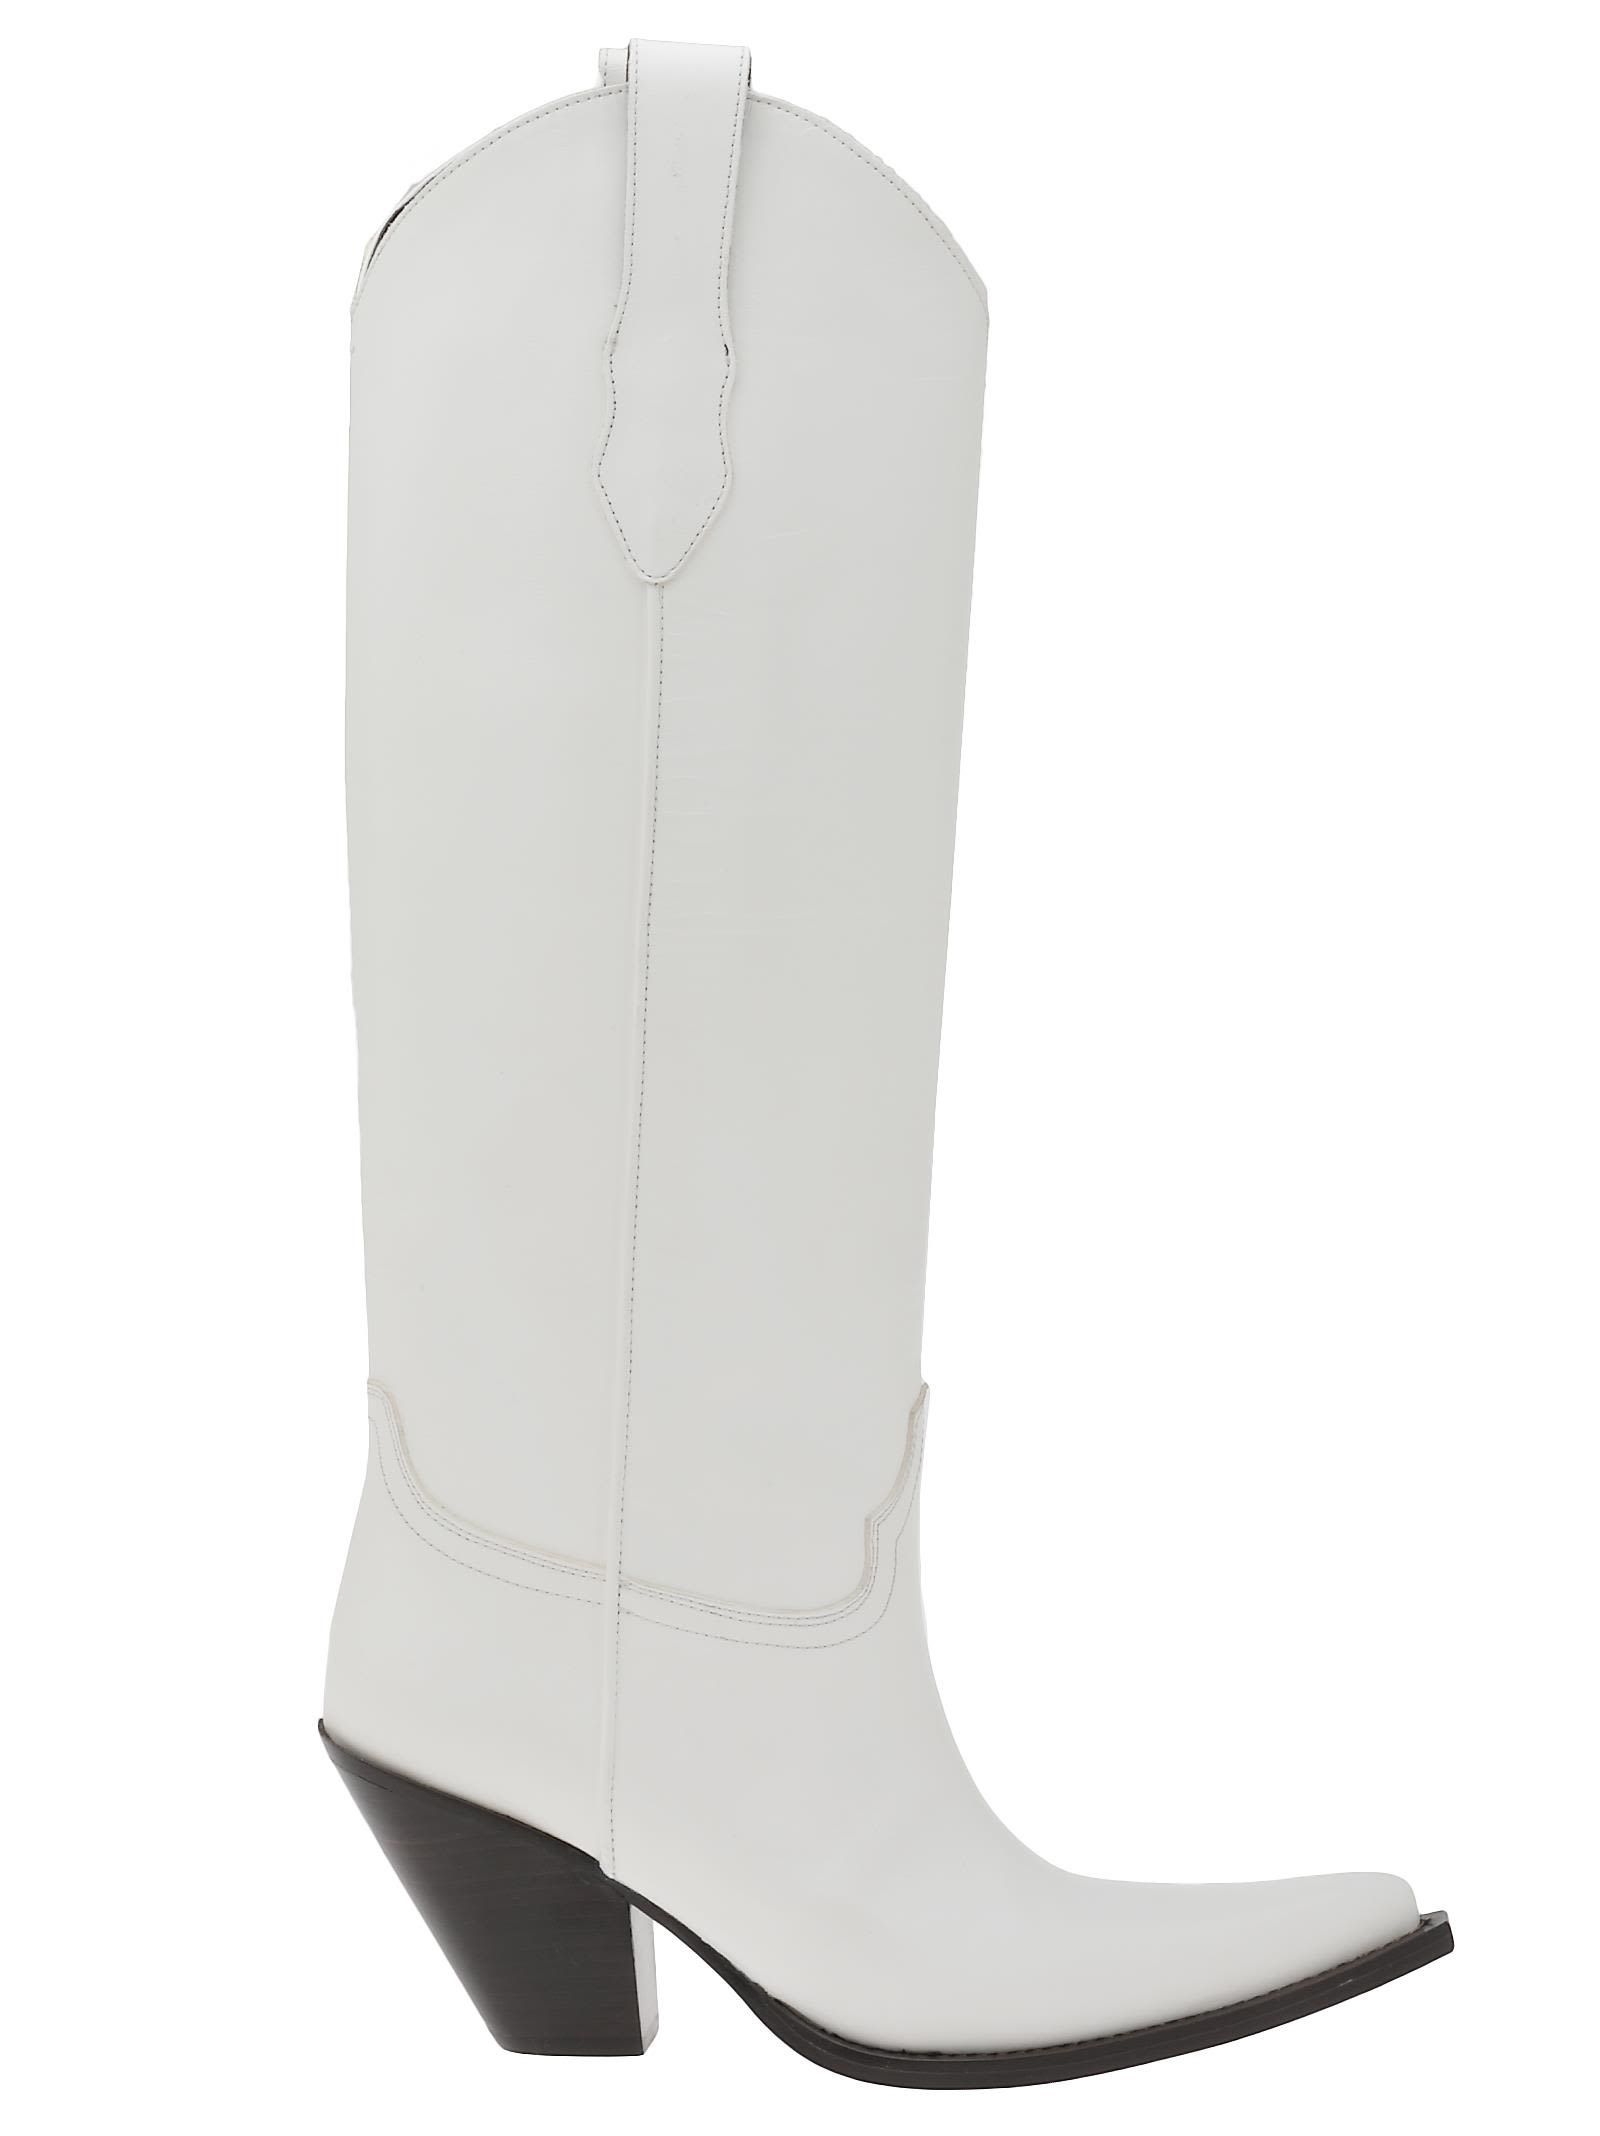 Maison Margiela - Maison Margiela Maison Margiela Leather Boot #Shoes